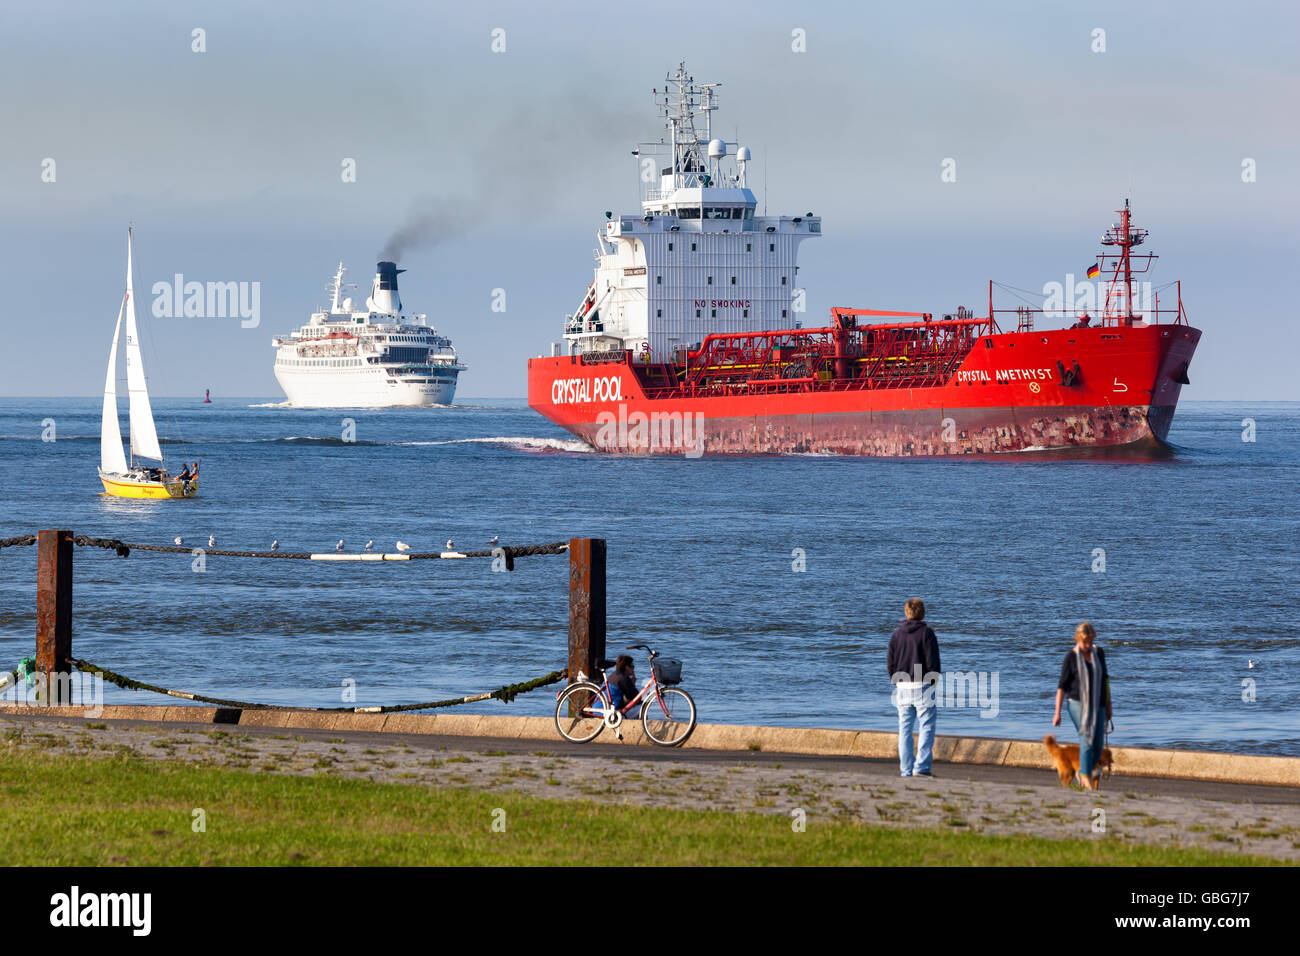 Evening scene at Cuxhaven, Germany with Oil/Chemical Tanker 'CRYSTAL AMETHYST' and Cruise Ship 'DISCOVERY'. - Stock Image